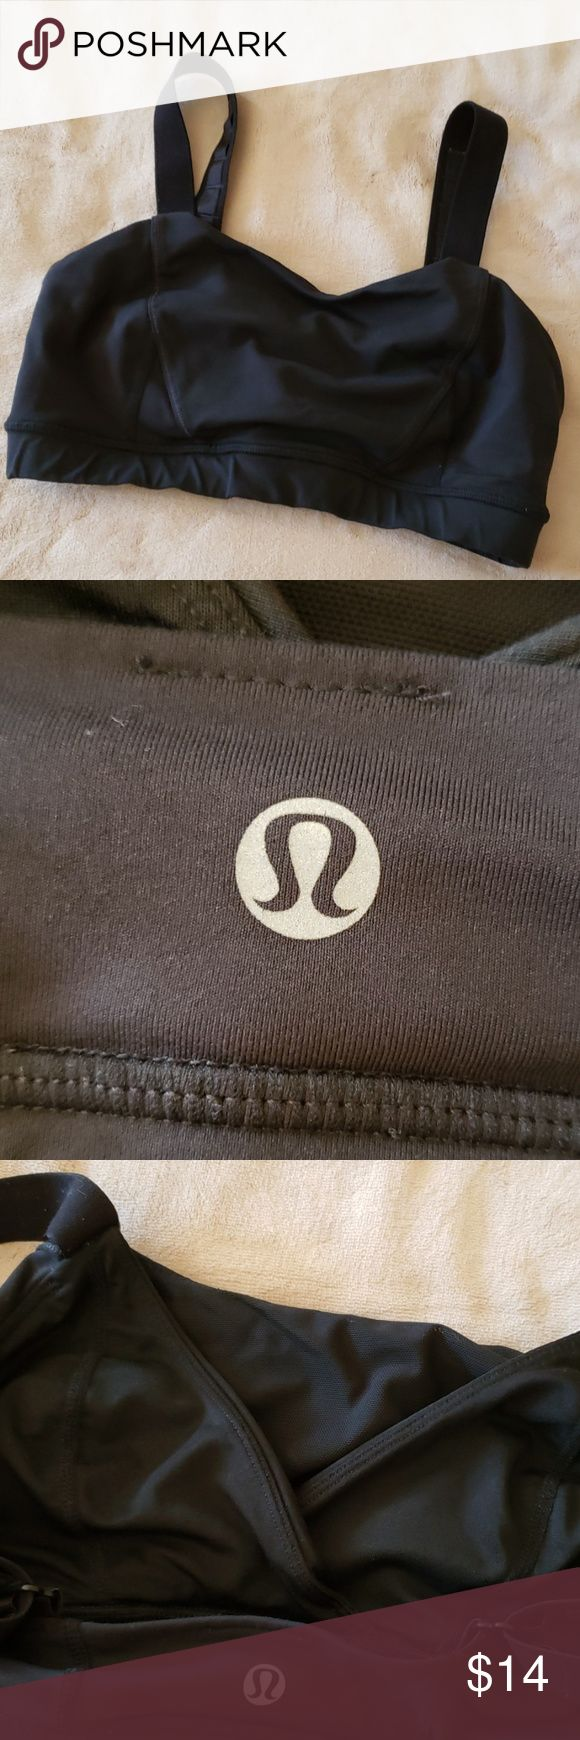 Lululemon 6 adjust me bra black Lululemon Size 6 dot gone but I assure u it's a 6 Selling all my size 6 since had a breast reduction and these work better for bustier gals. Priced low because size dot fell off and some pilling to straps only see close up. Normal for use lululemon athletica Intimates & Sleepwear Bras